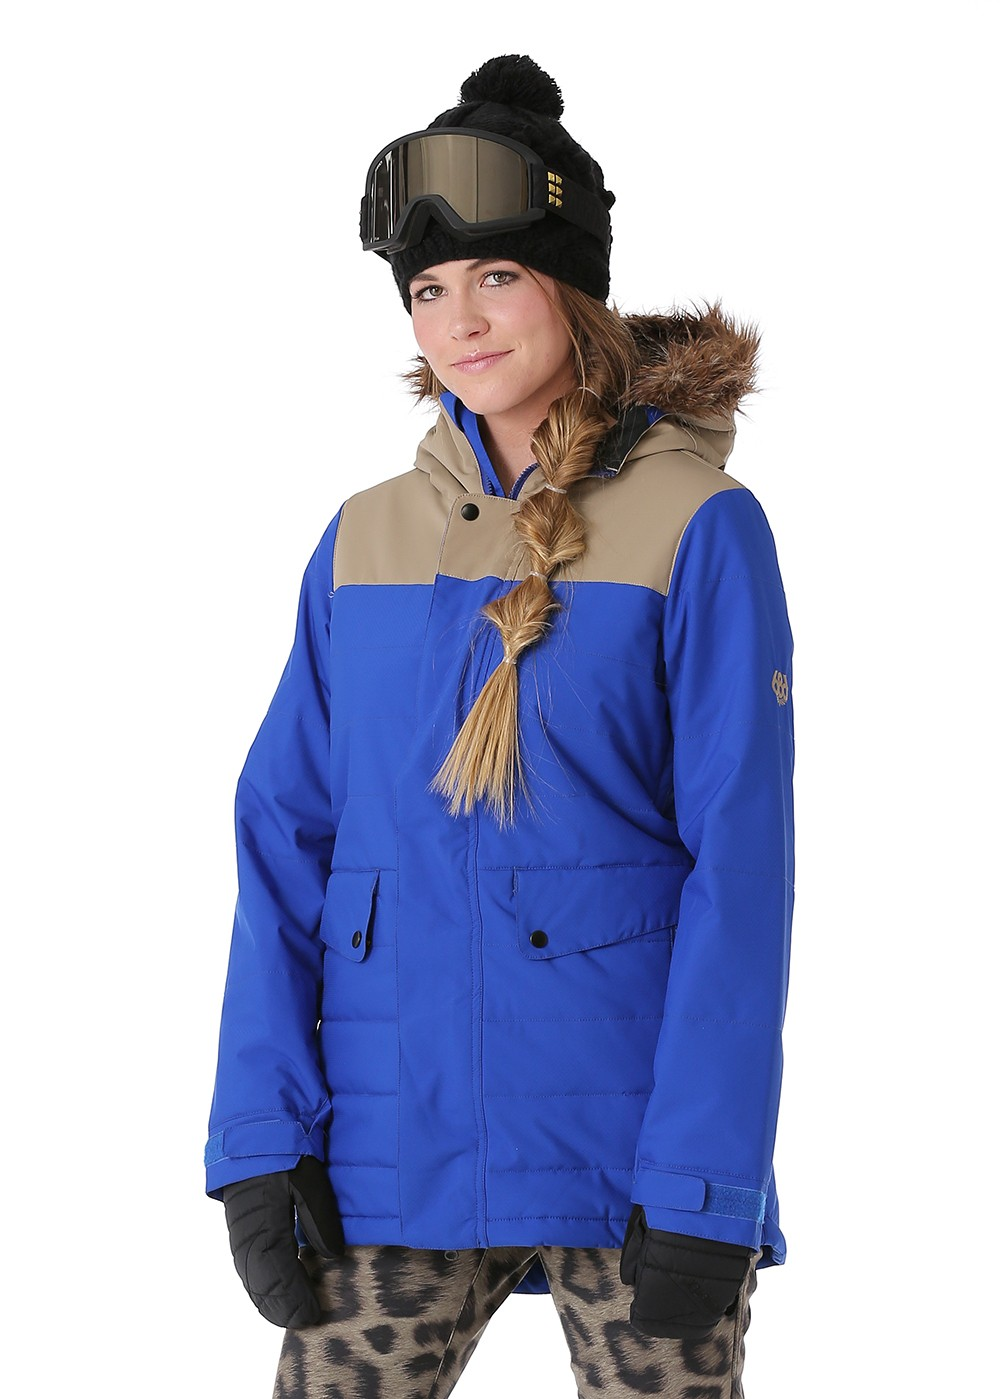 Women&39s Winter Jackets | Ladies Winter Coats | WinterWomen